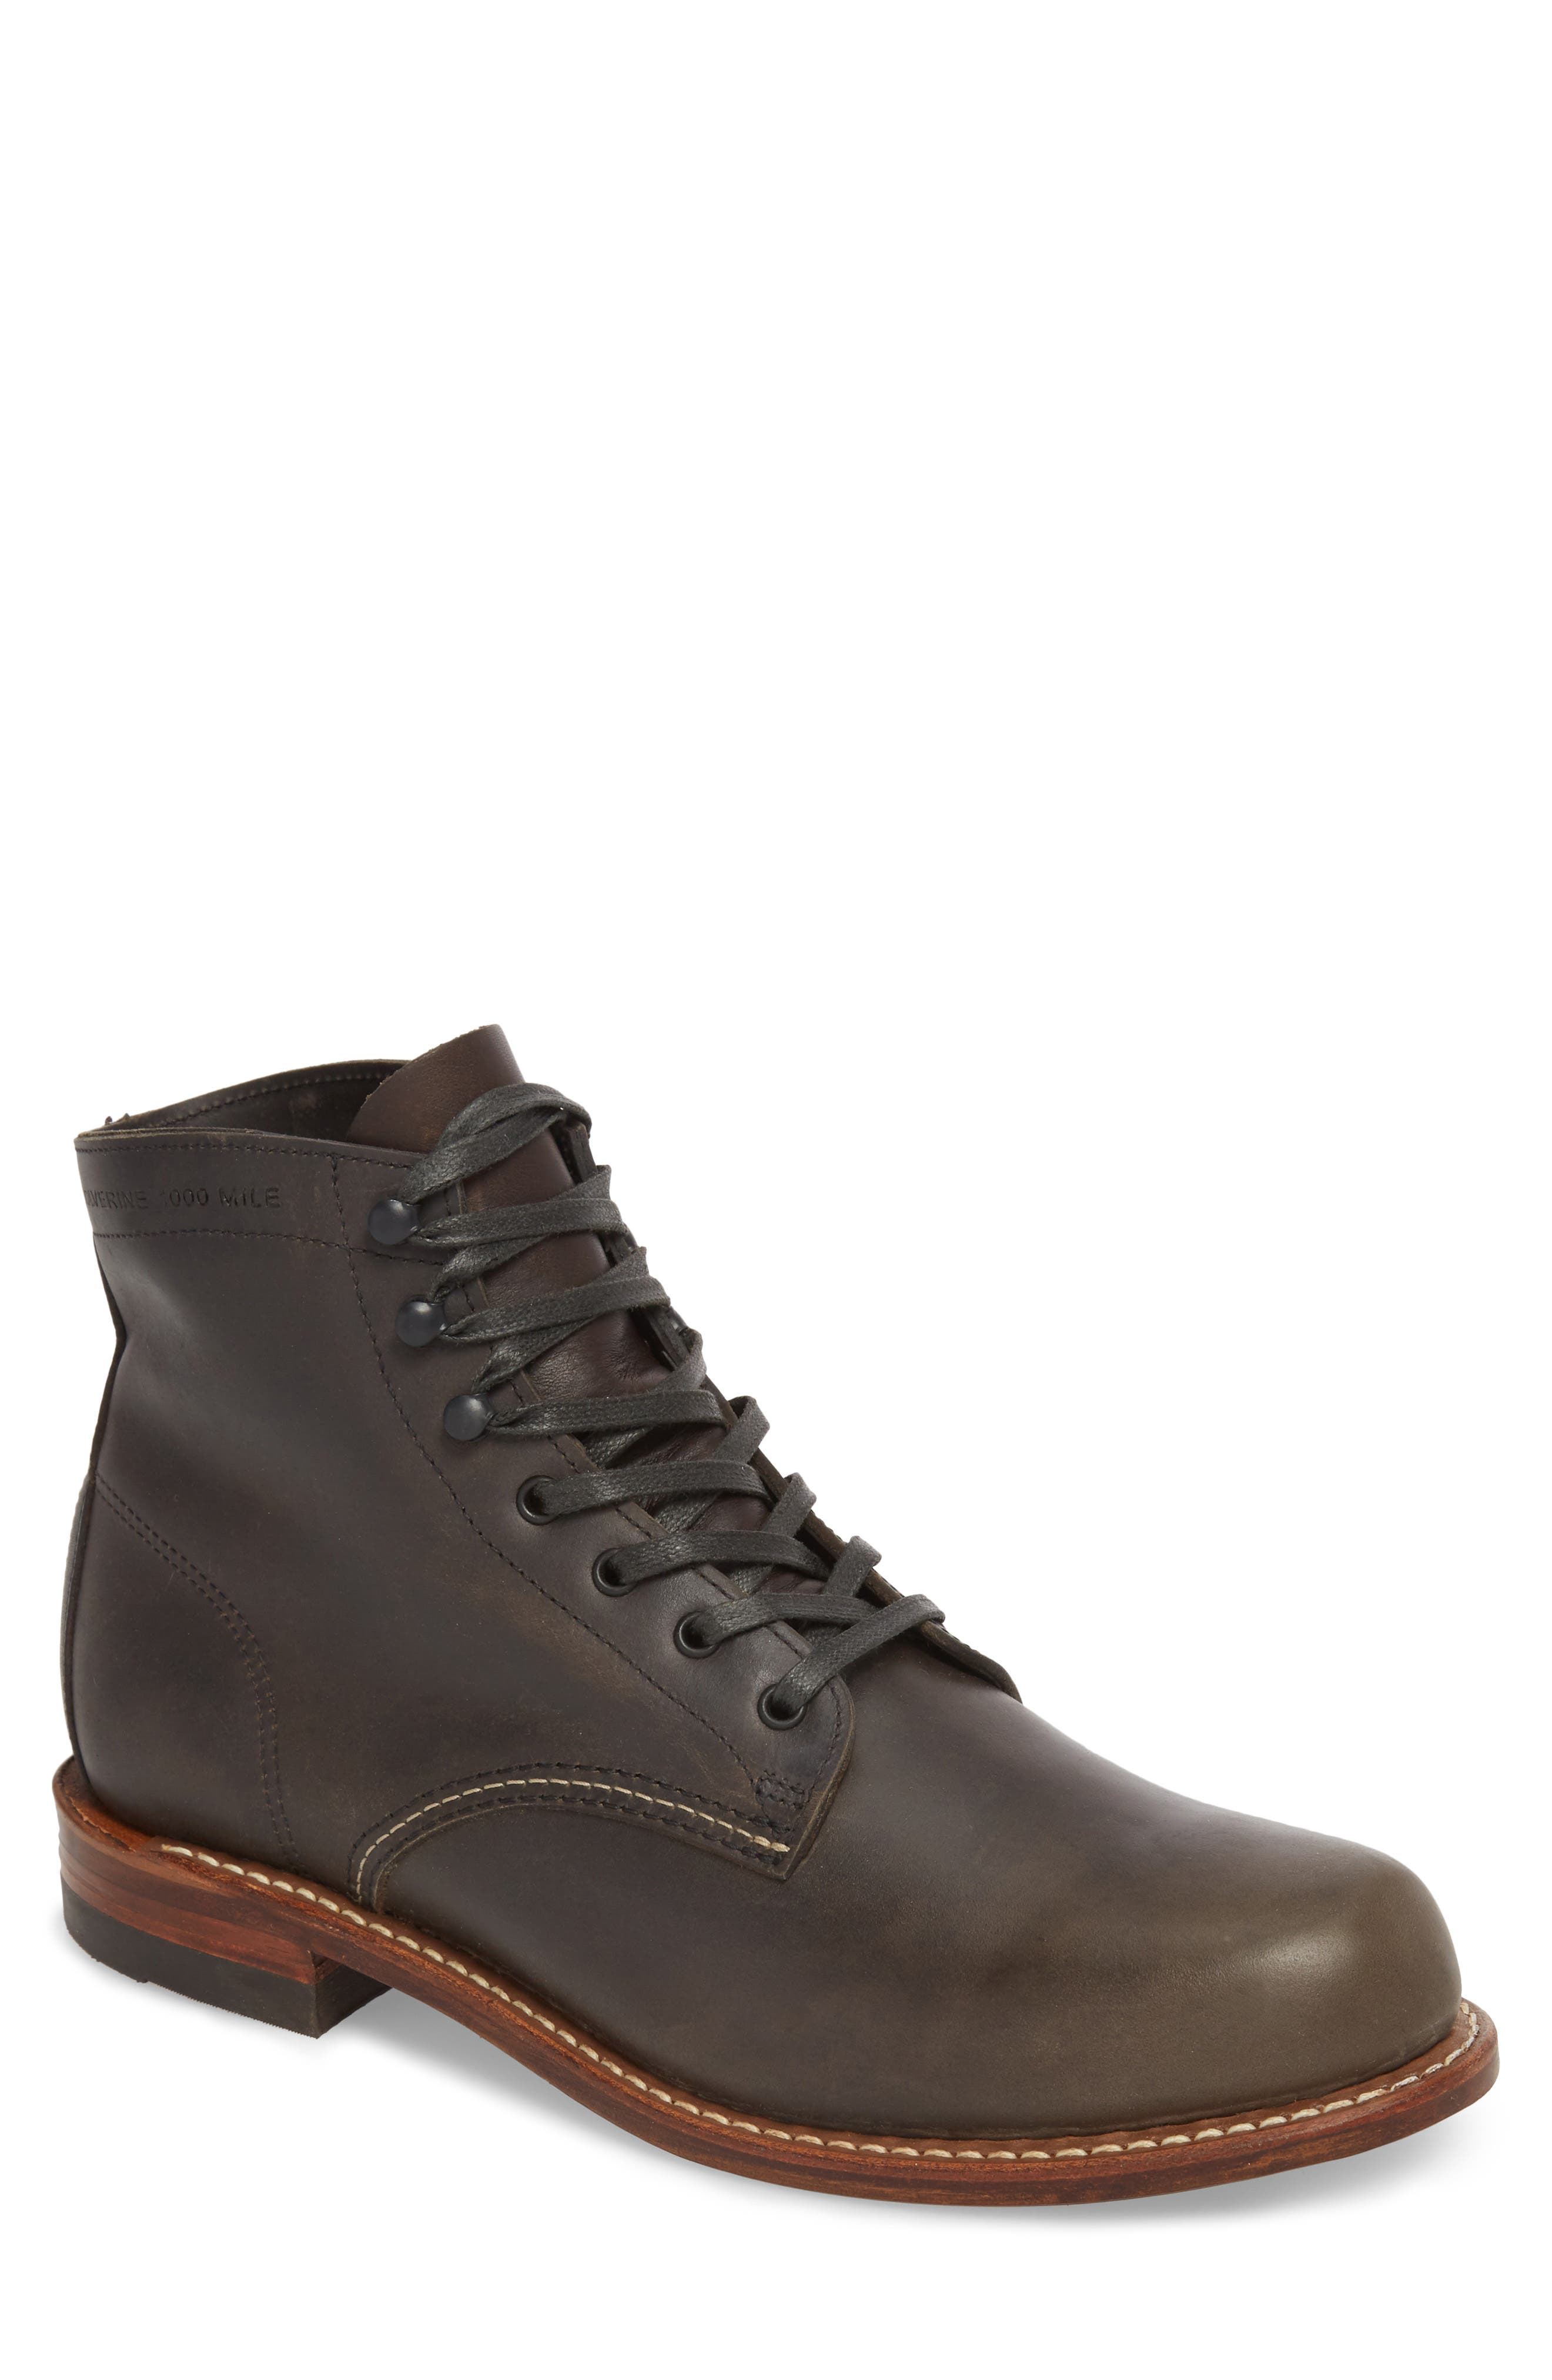 '1000 Mile' Plain Toe Boot,                             Main thumbnail 1, color,                             CHARCOAL